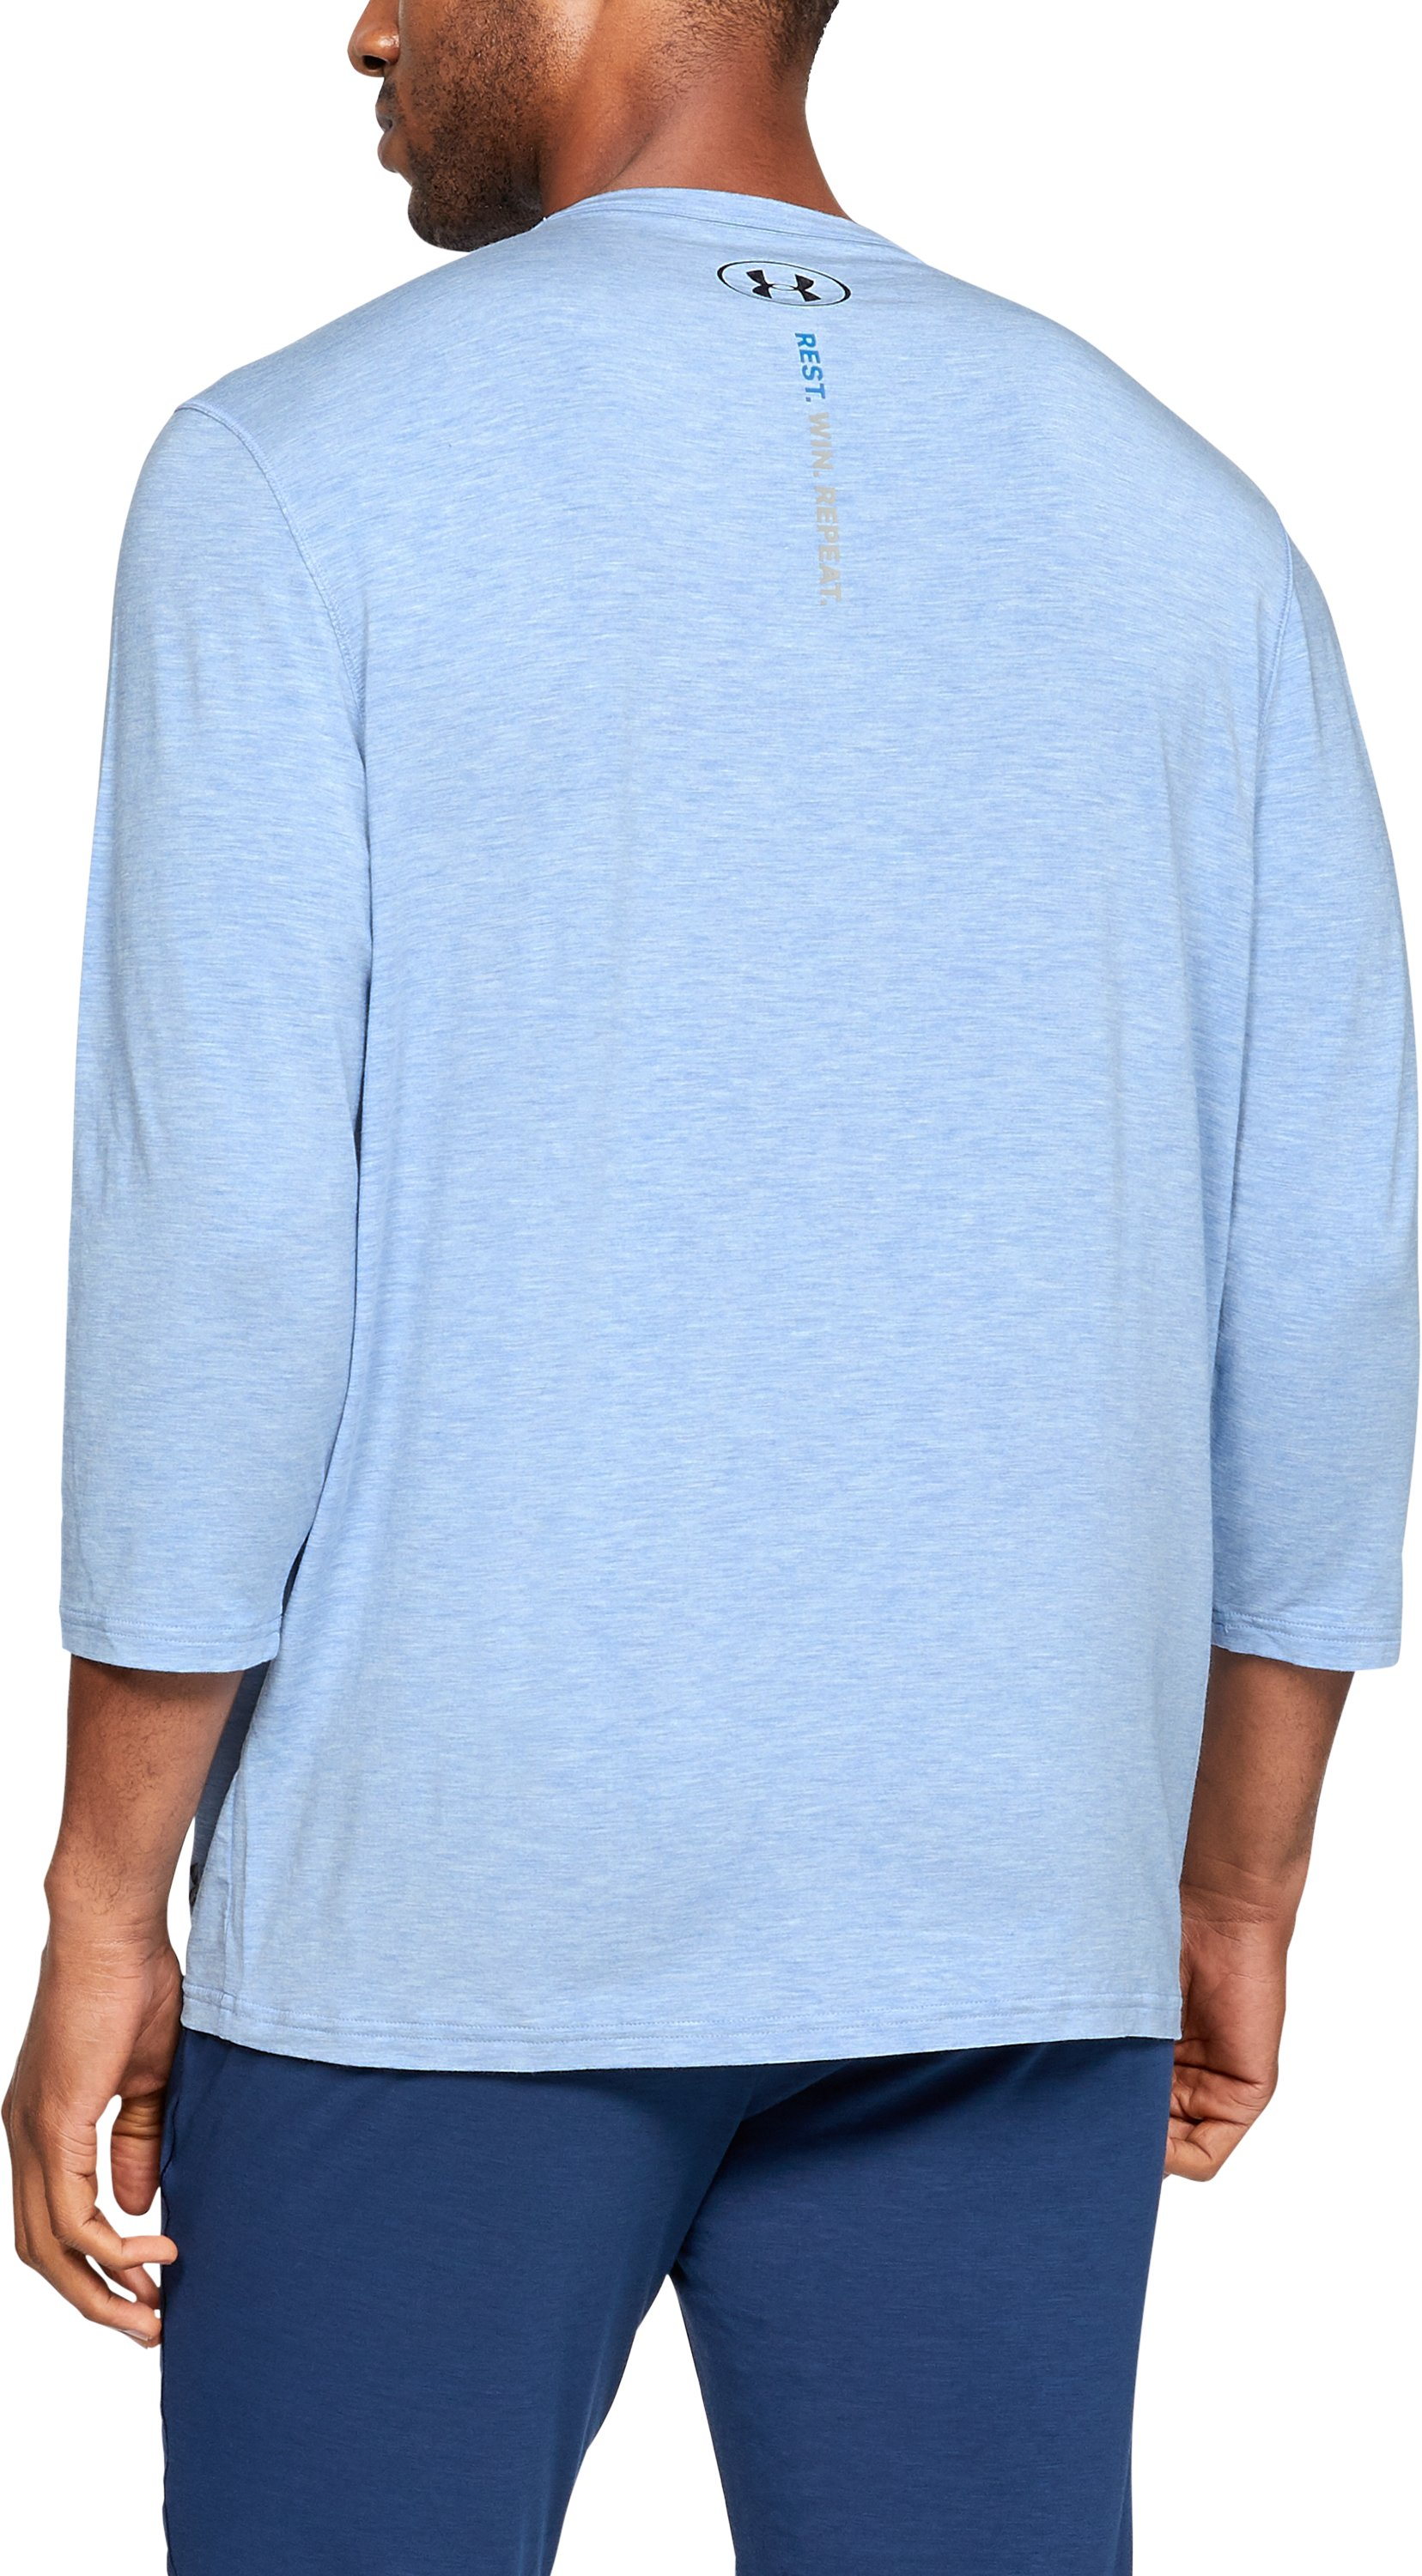 Men's Athlete Recovery Ultra Comfort Sleepwear Henley, WATER MEDIUM HEATHER,